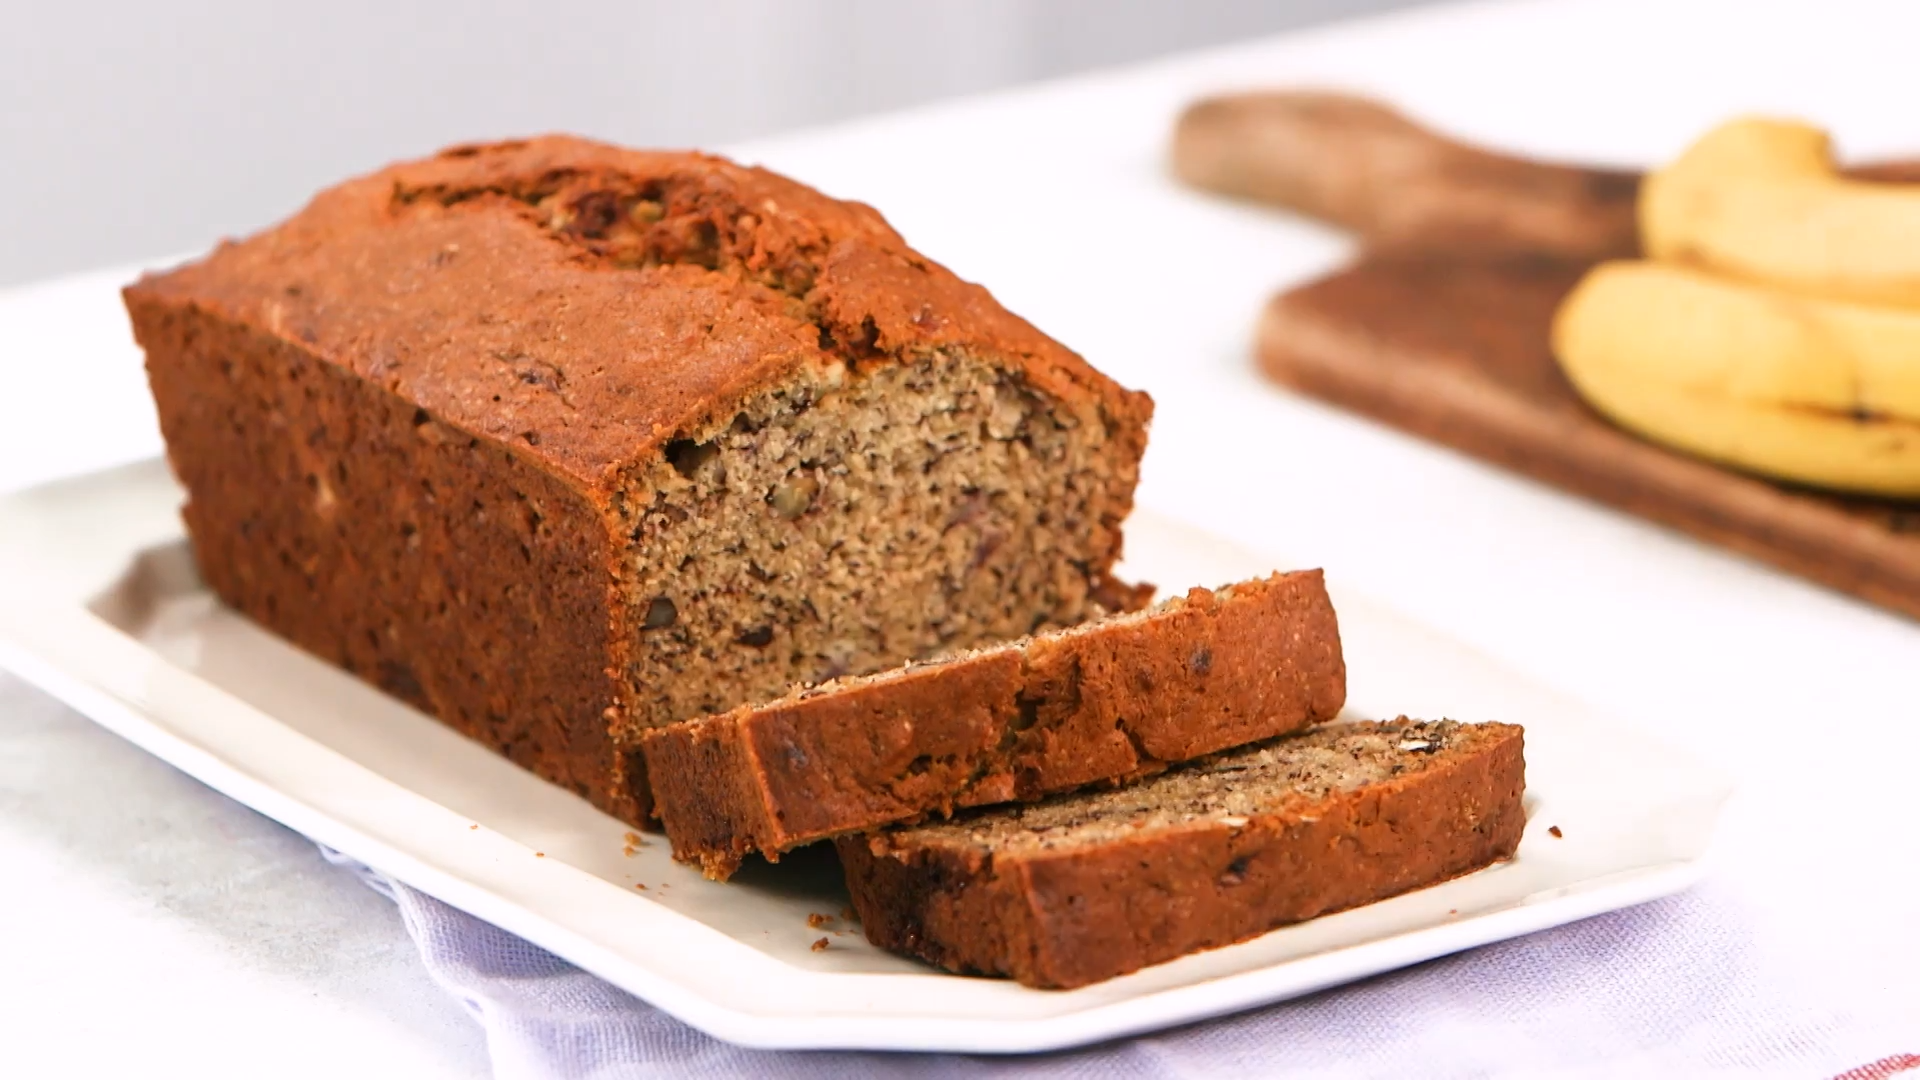 Amy Grant's Banana Nut Bread